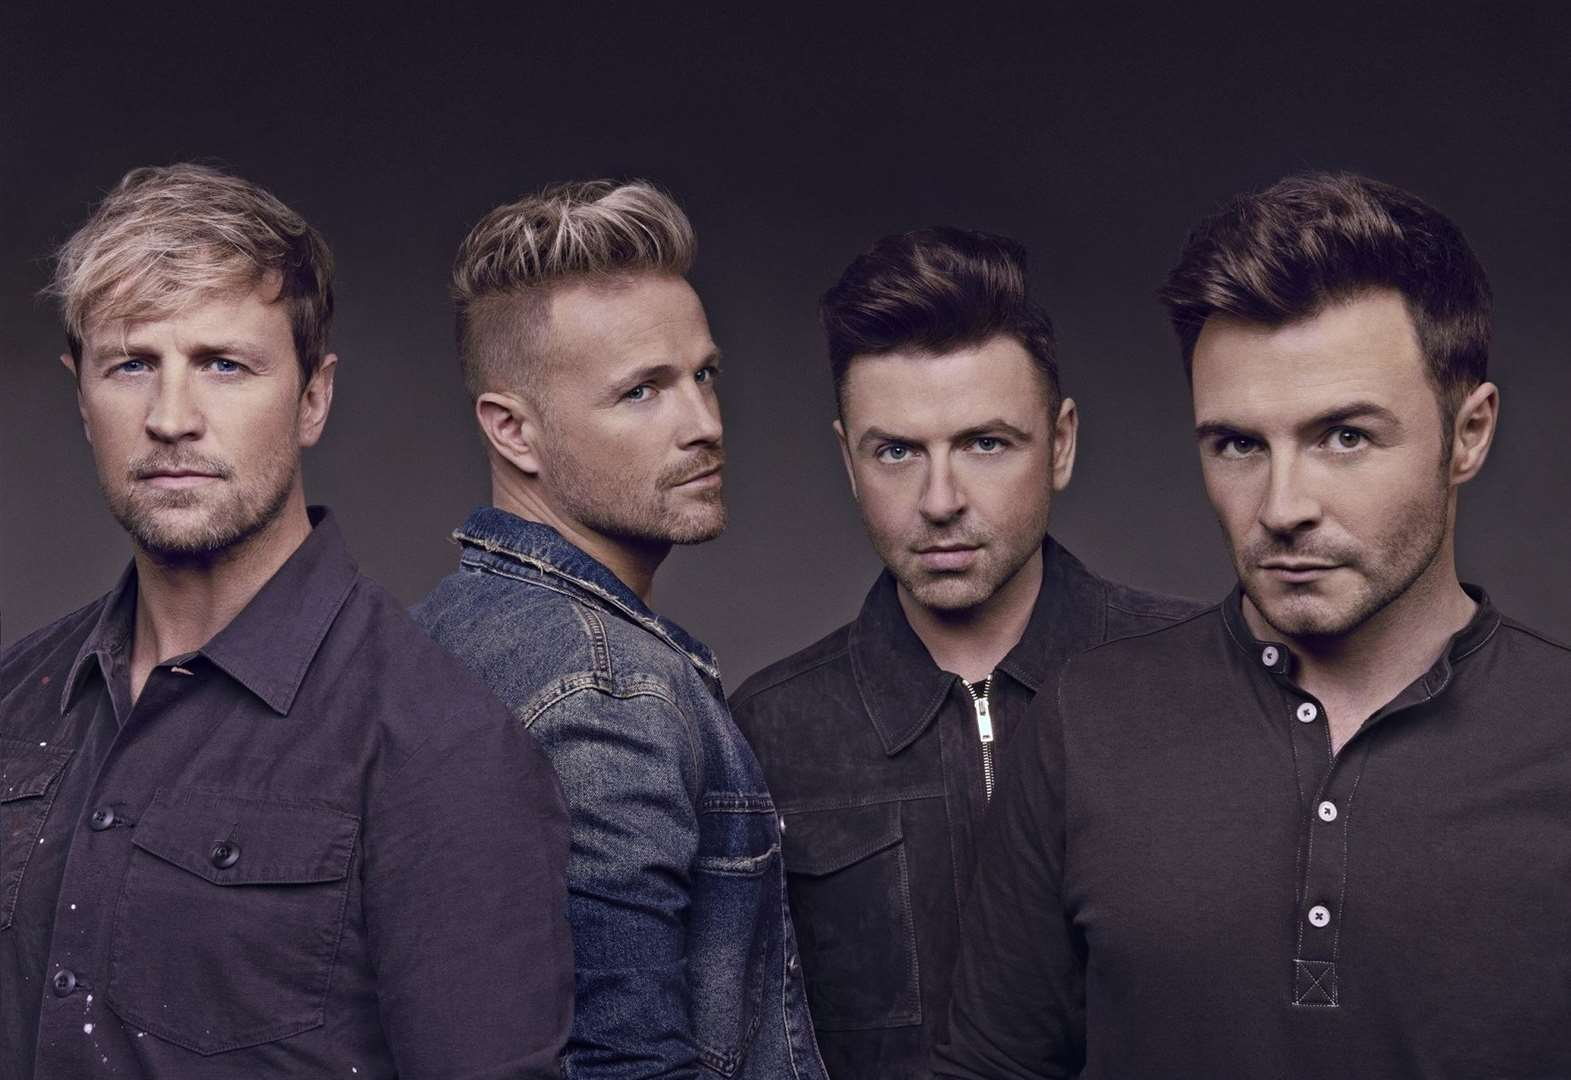 Tickets go on sale today for Westlife gig at Weston Homes Stadium in Peterborough